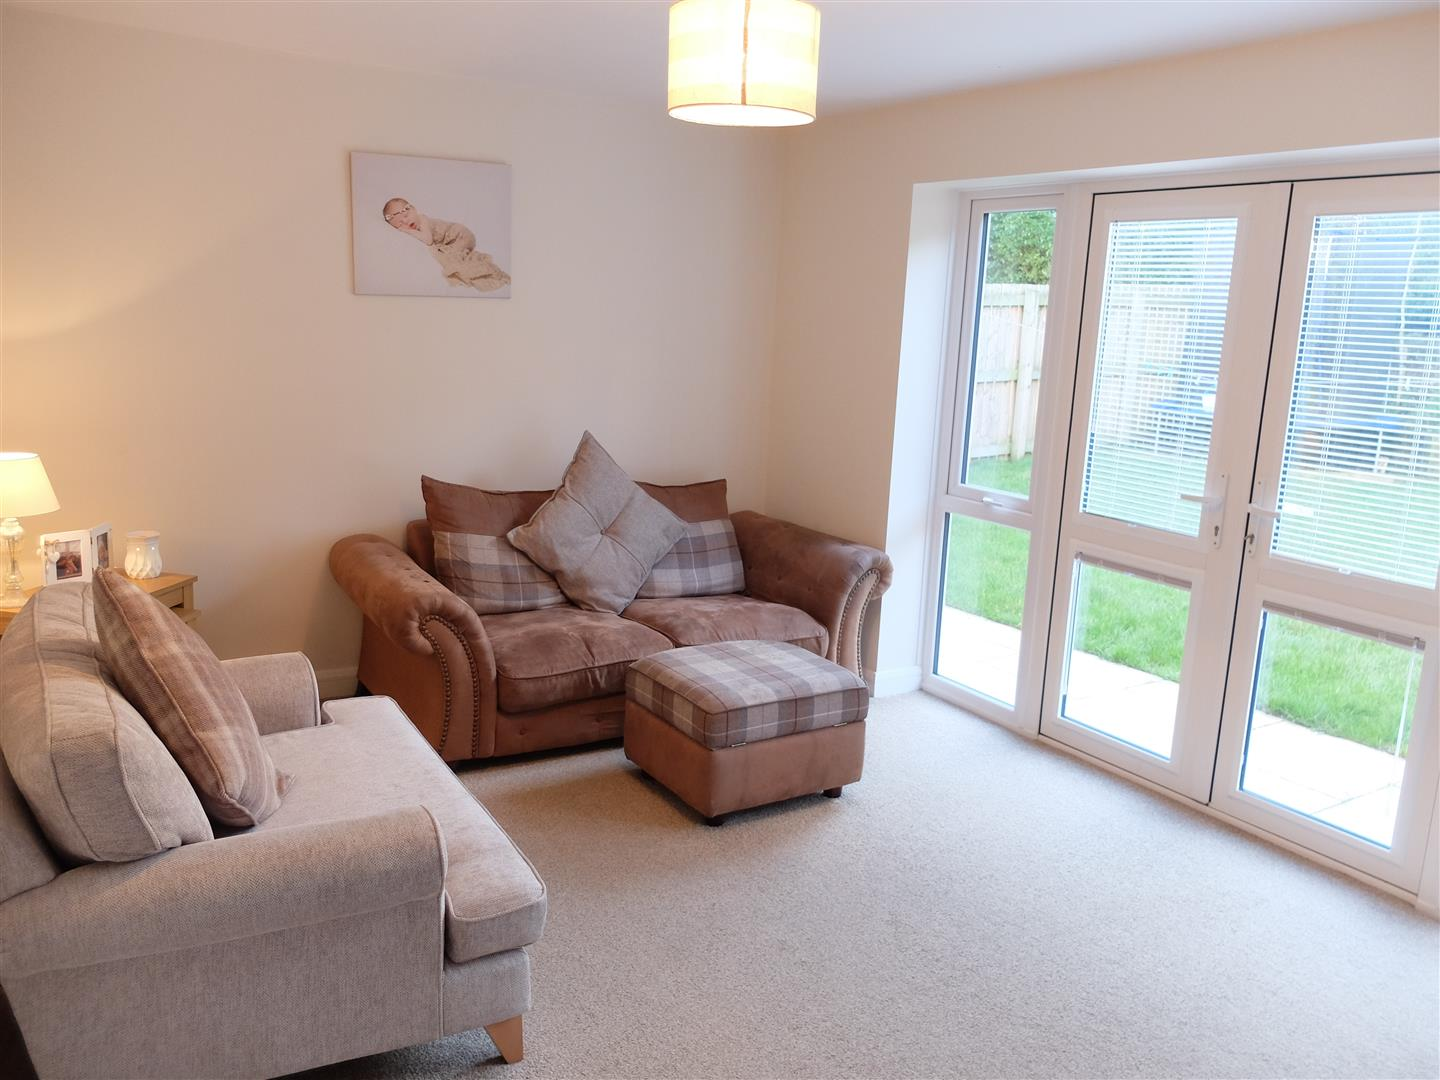 3 Bedrooms House - Semi-Detached For Sale 38 Thomlinson Avenue Carlisle